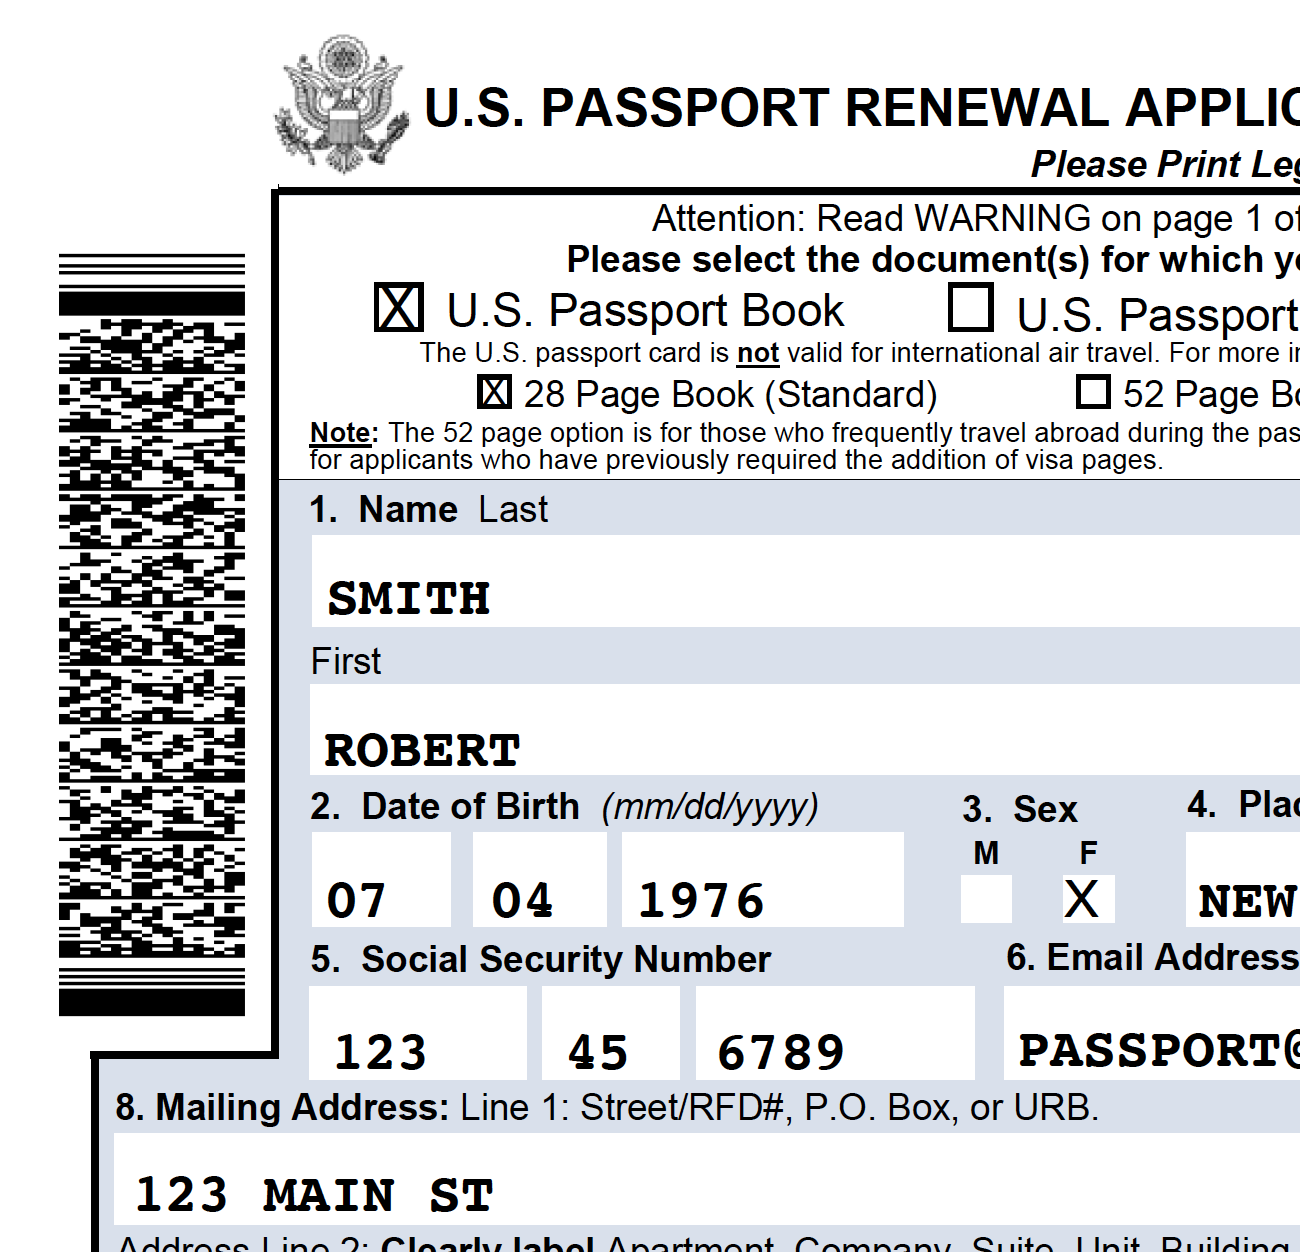 Expedited US Passport Renewal Service – Passport Renewal Application Form